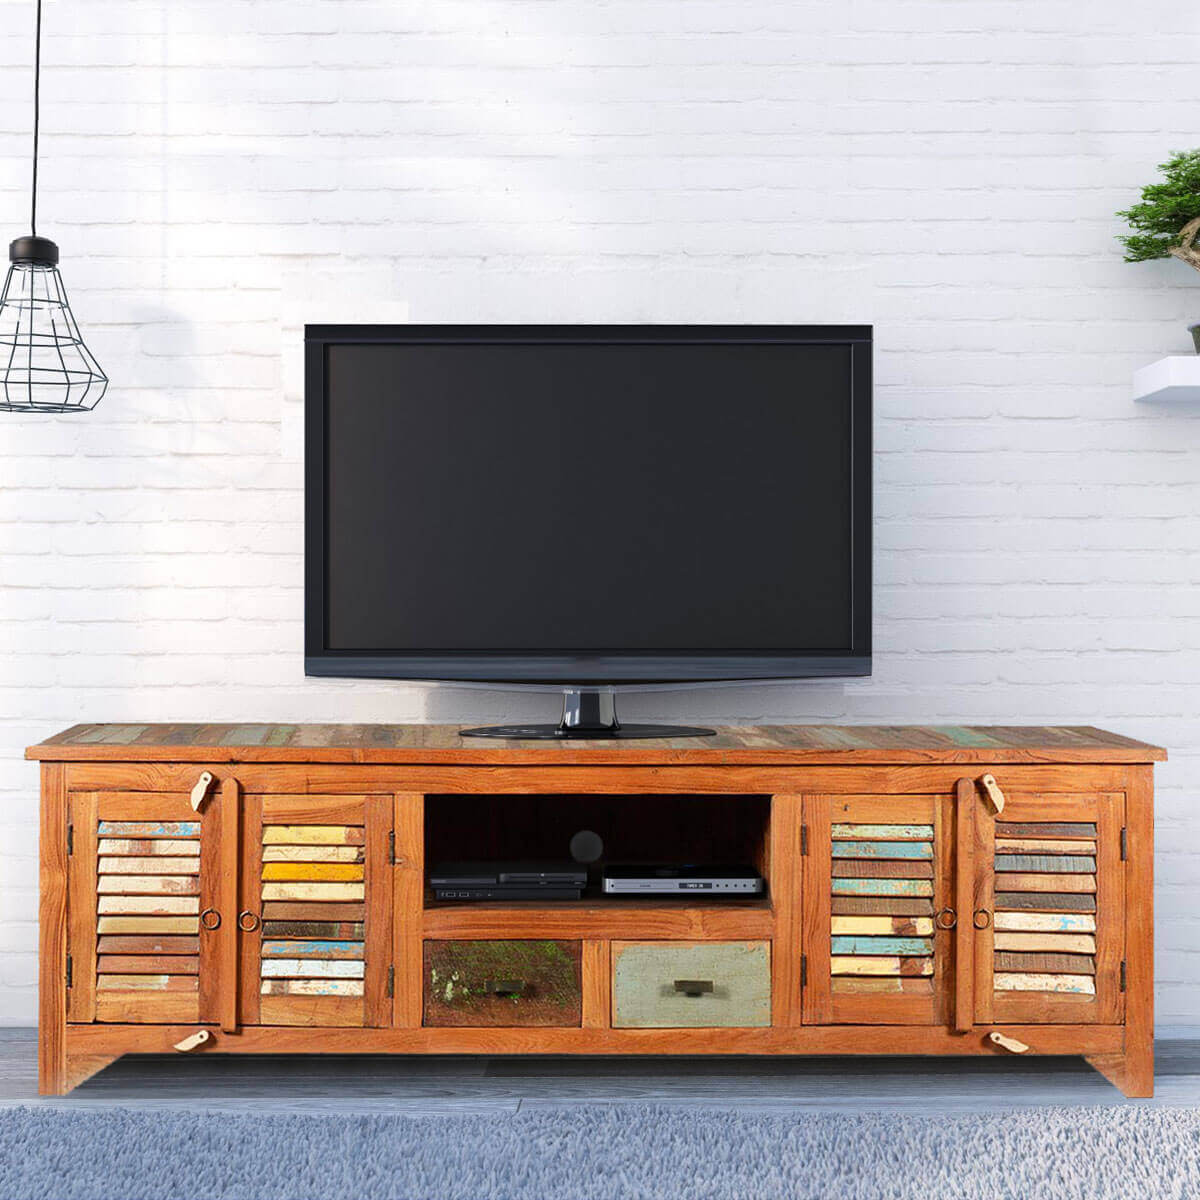 low priced 53d86 9921f Rustic Reclaimed Wood Rainbow Shutter Doors TV Stand Media Console